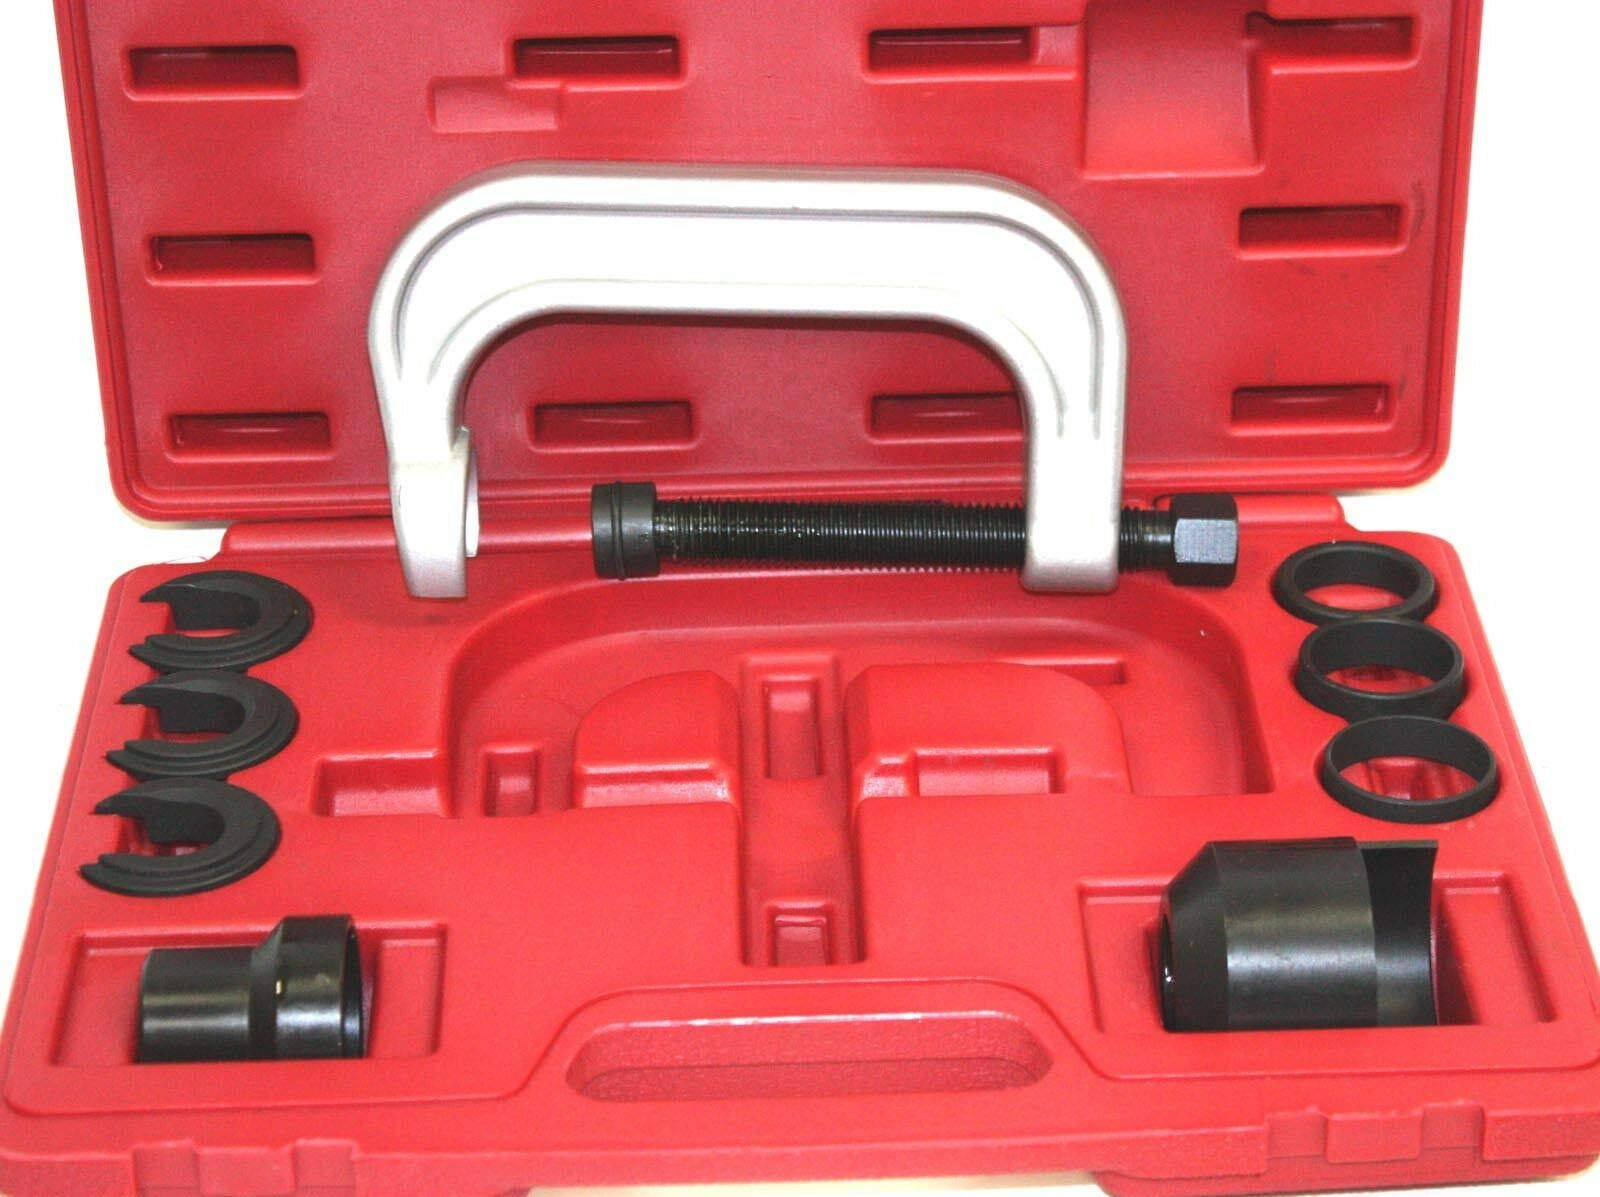 M2 Outlet Upper Control Arm Bushing Removal Installer Service Set with C Frame for Ford GM Chrysler by M2 Outlet (Image #2)